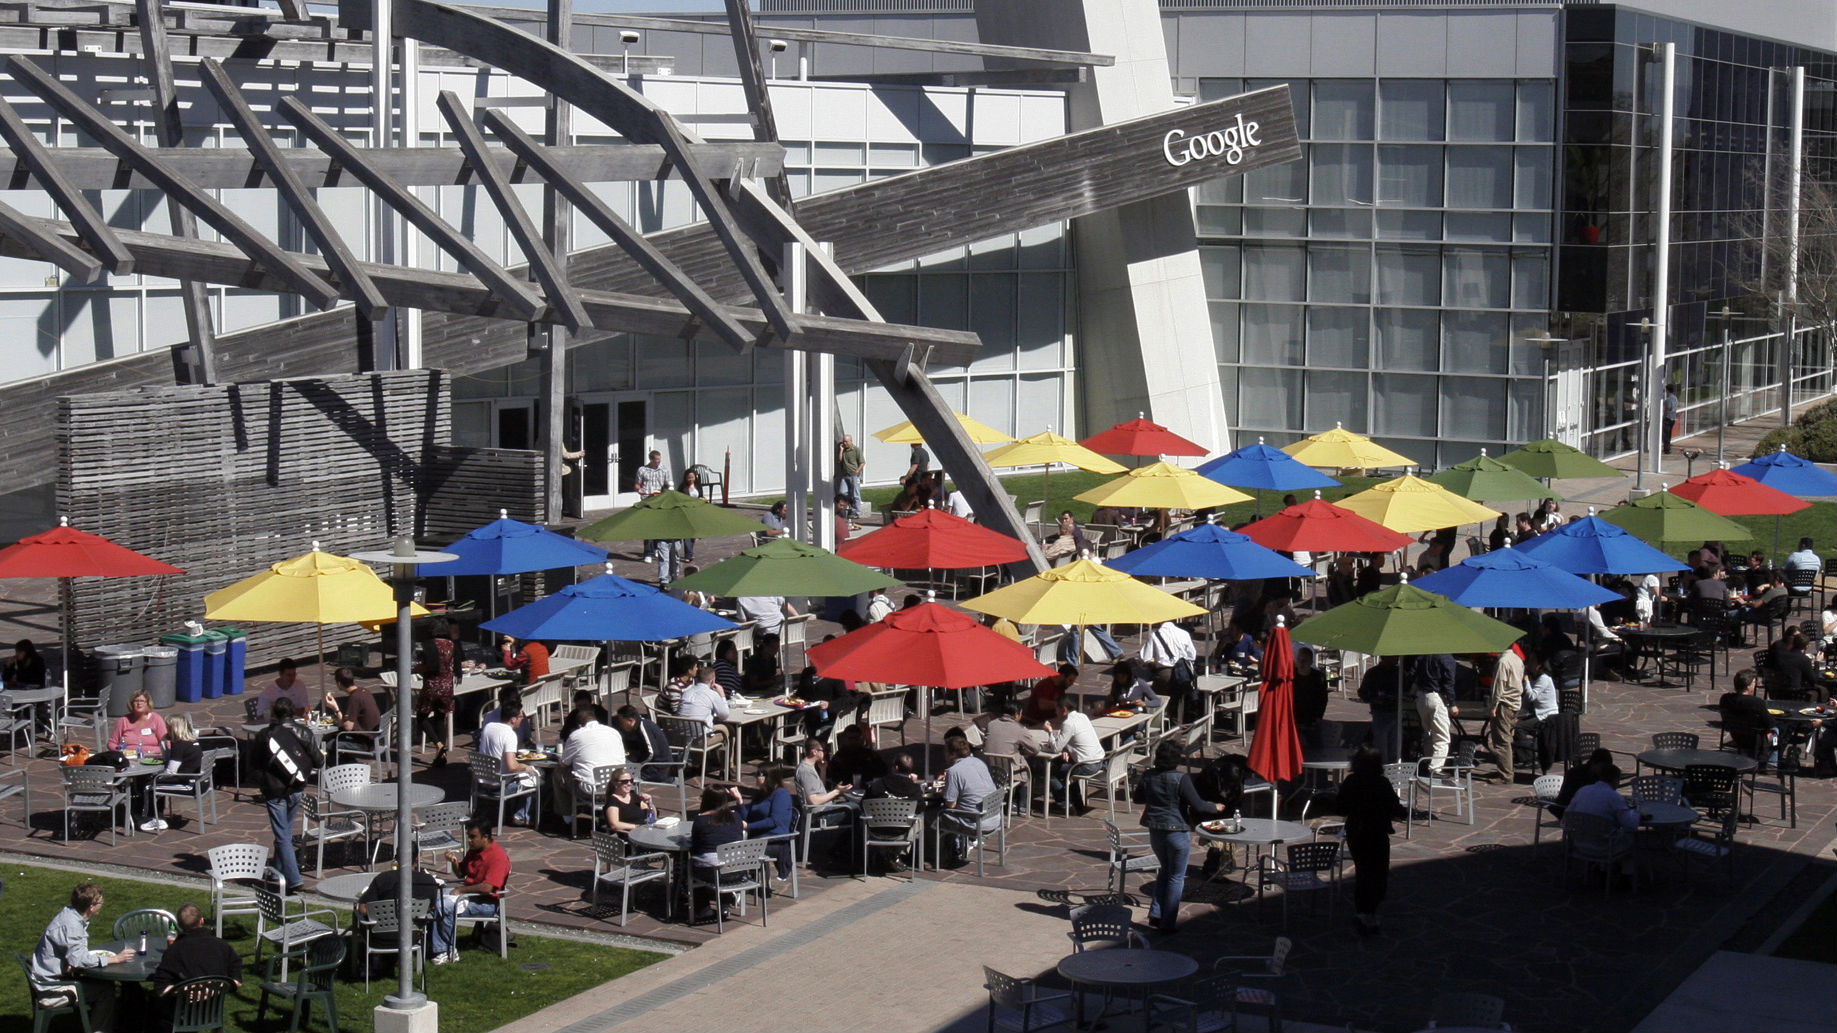 Employees choose their free lunch from one of fifteen different cafes at Google headquarters in Mountain View, California March 3, 2008. REUTERS/Erin Siegal (UNITED STATES)